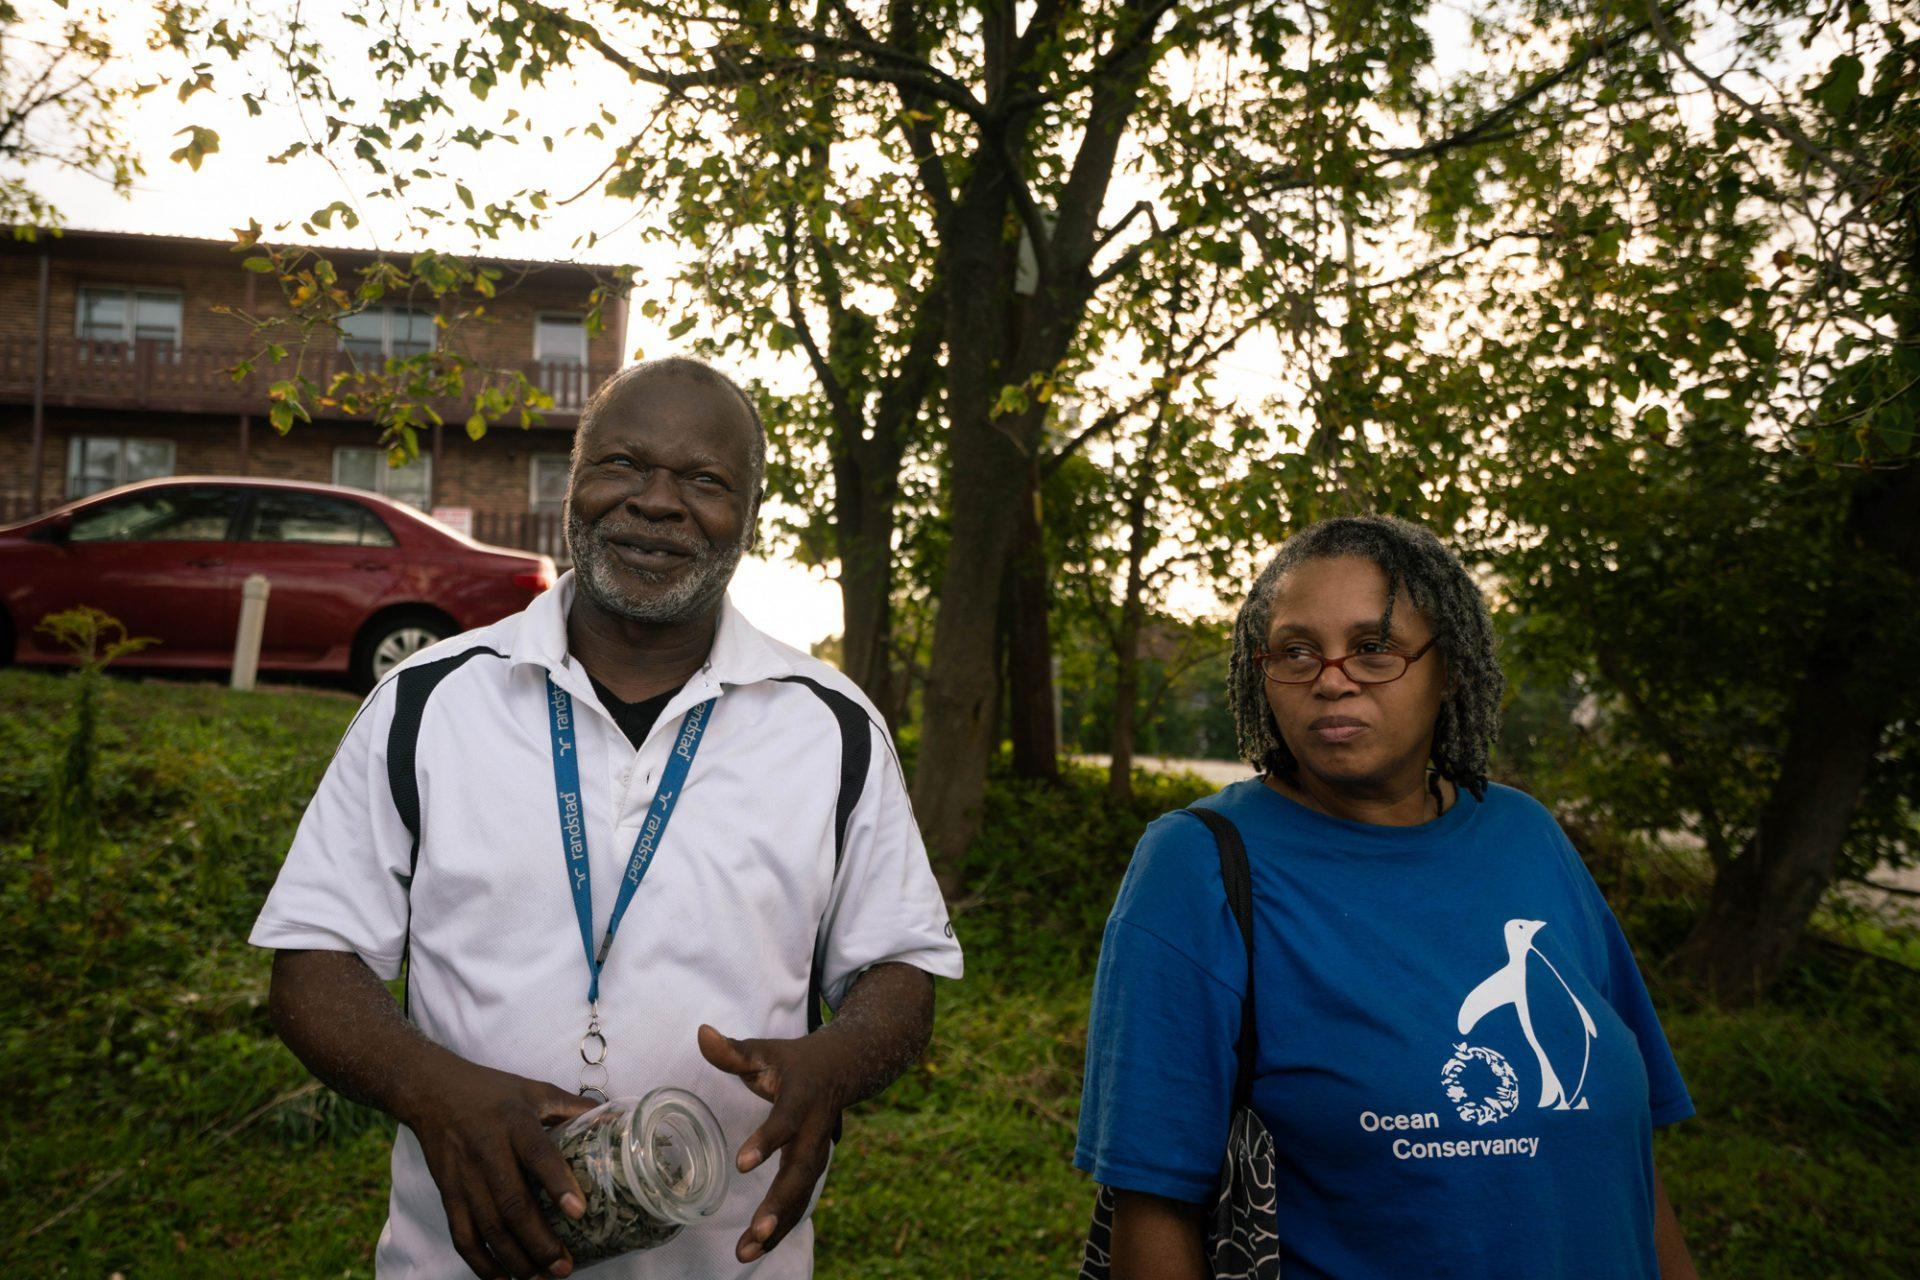 Johnell Hunter Sr., who runs the Bless the Children gardening program in Winston Salem, and his wife Deborah Hunter at the celebration. He taught a workshop Friday night on some of his organic practices and therapeutic herbs.